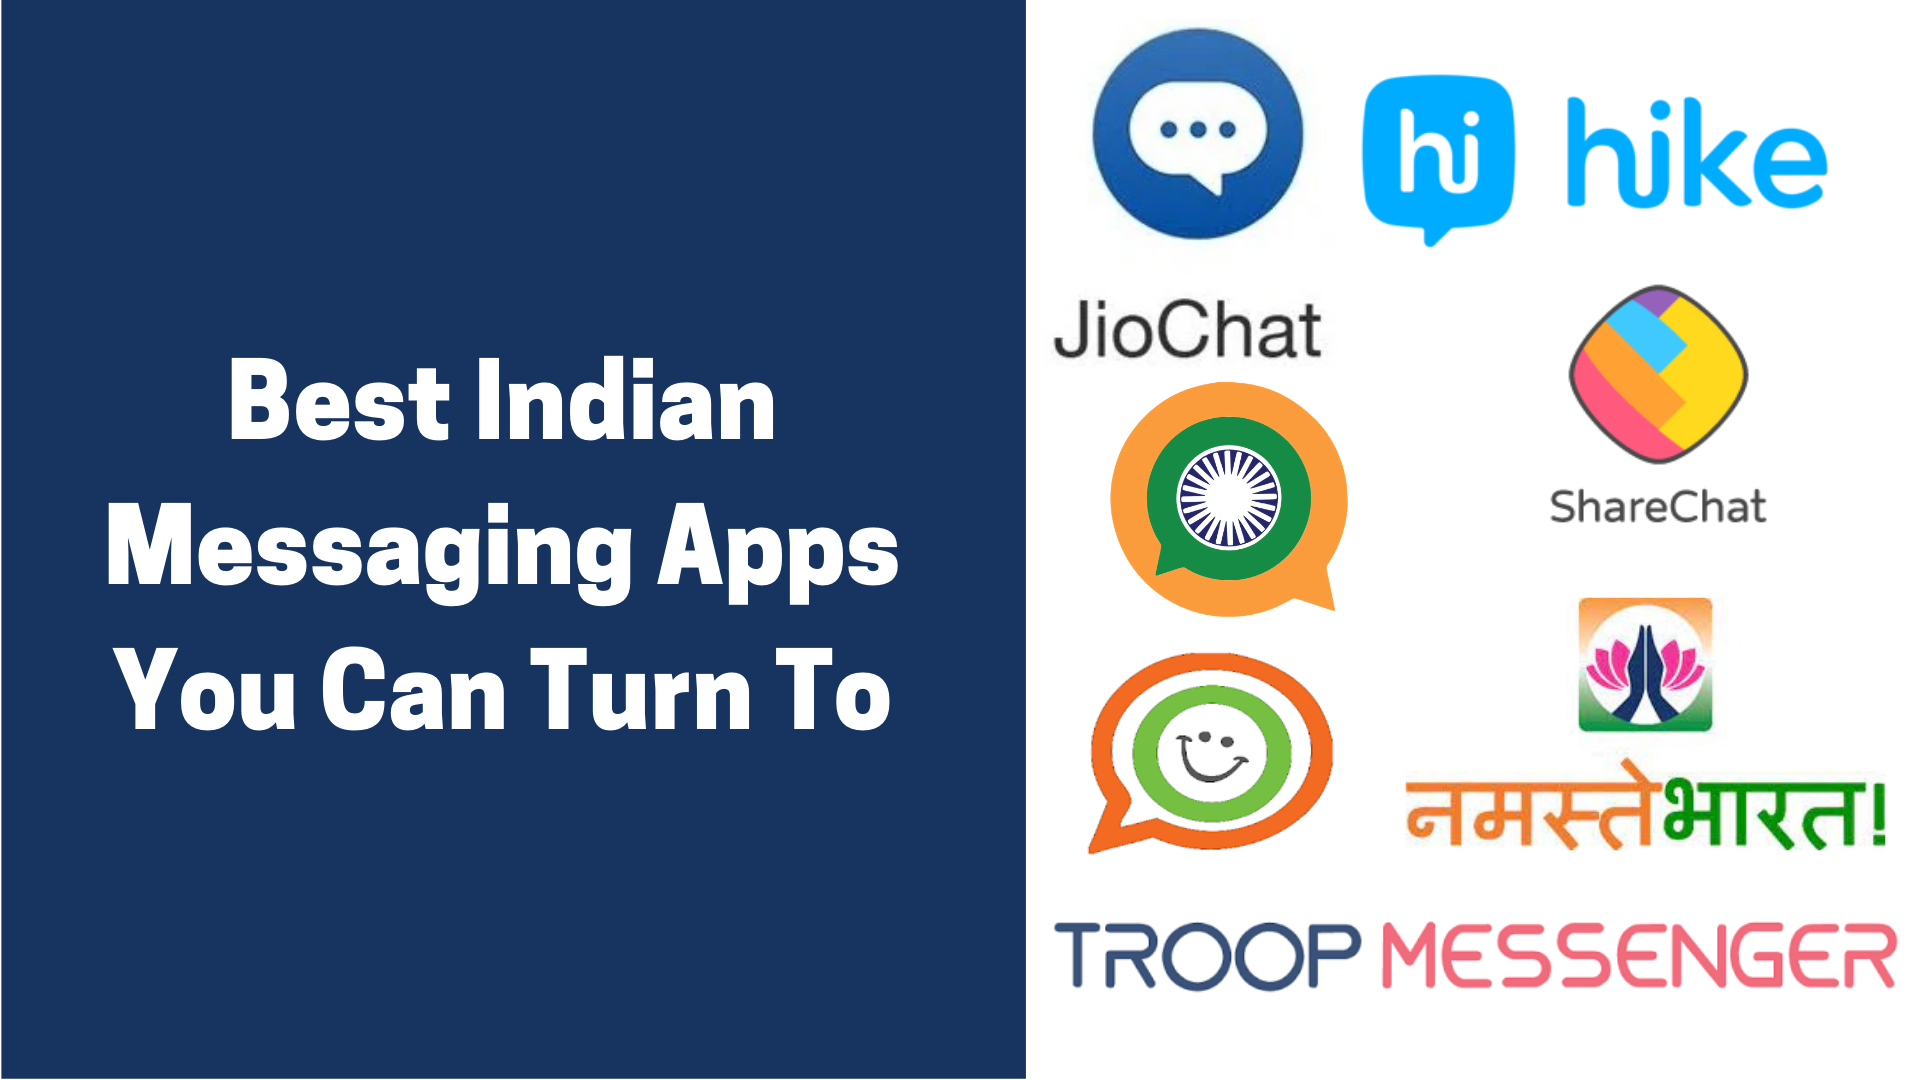 Best Indian Messaging Apps You Can Turn To